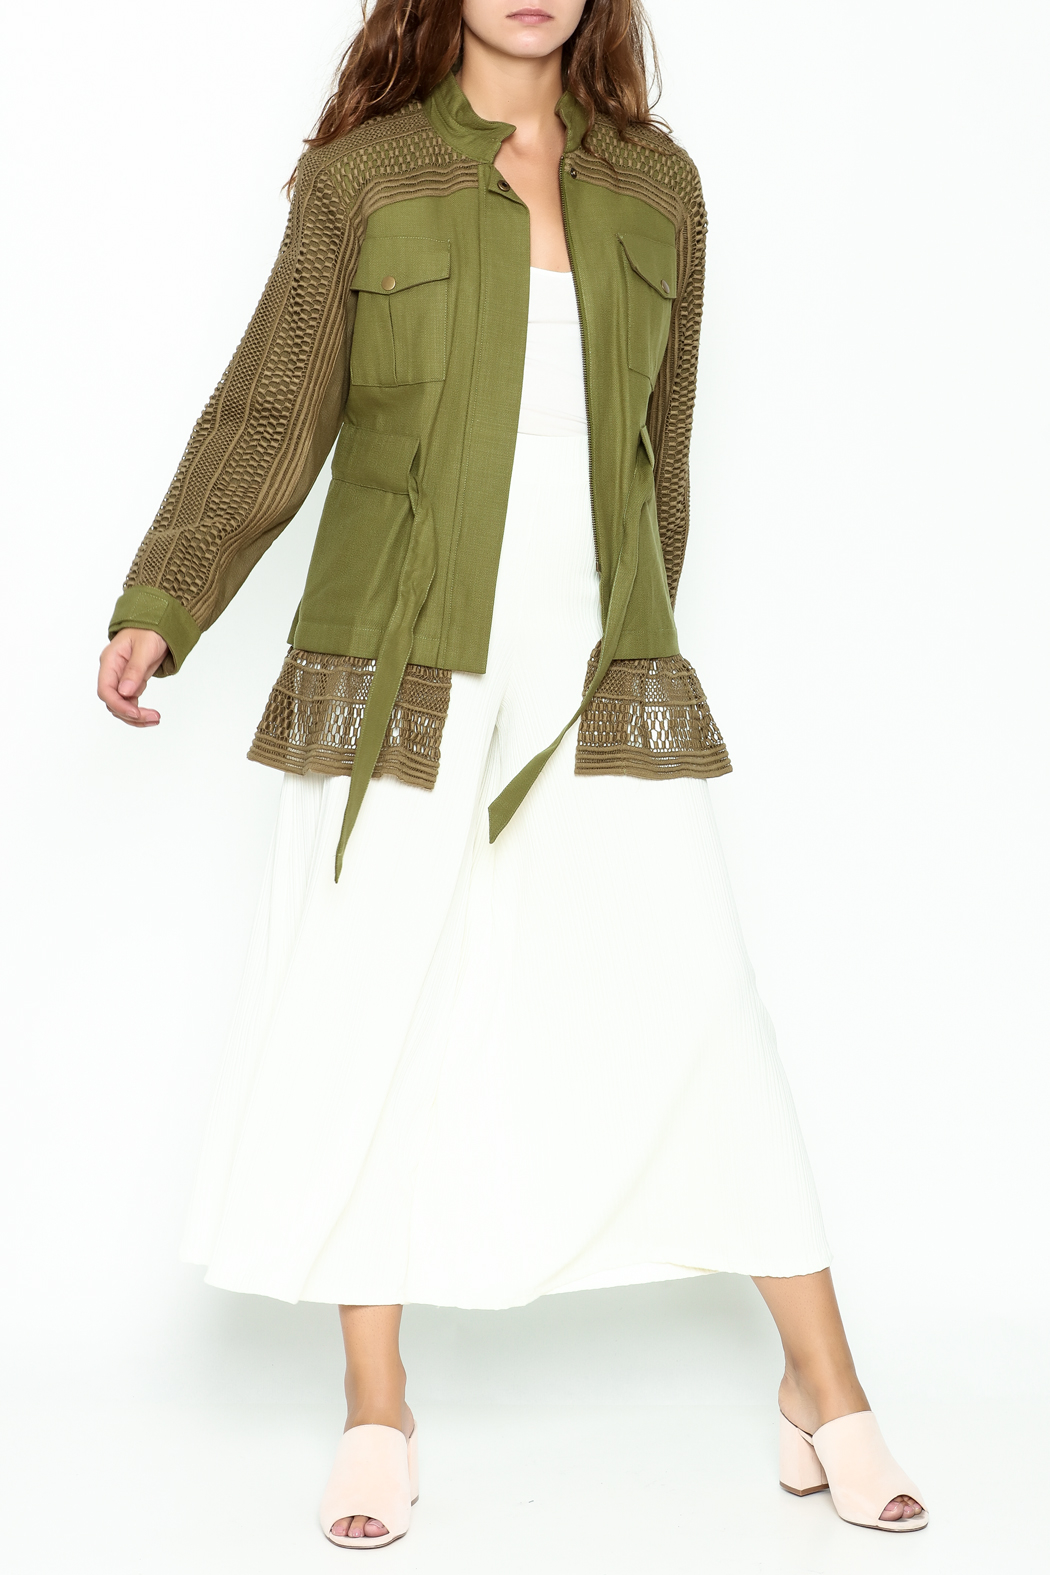 SEA Baja Lace Military Jacket - Side Cropped Image